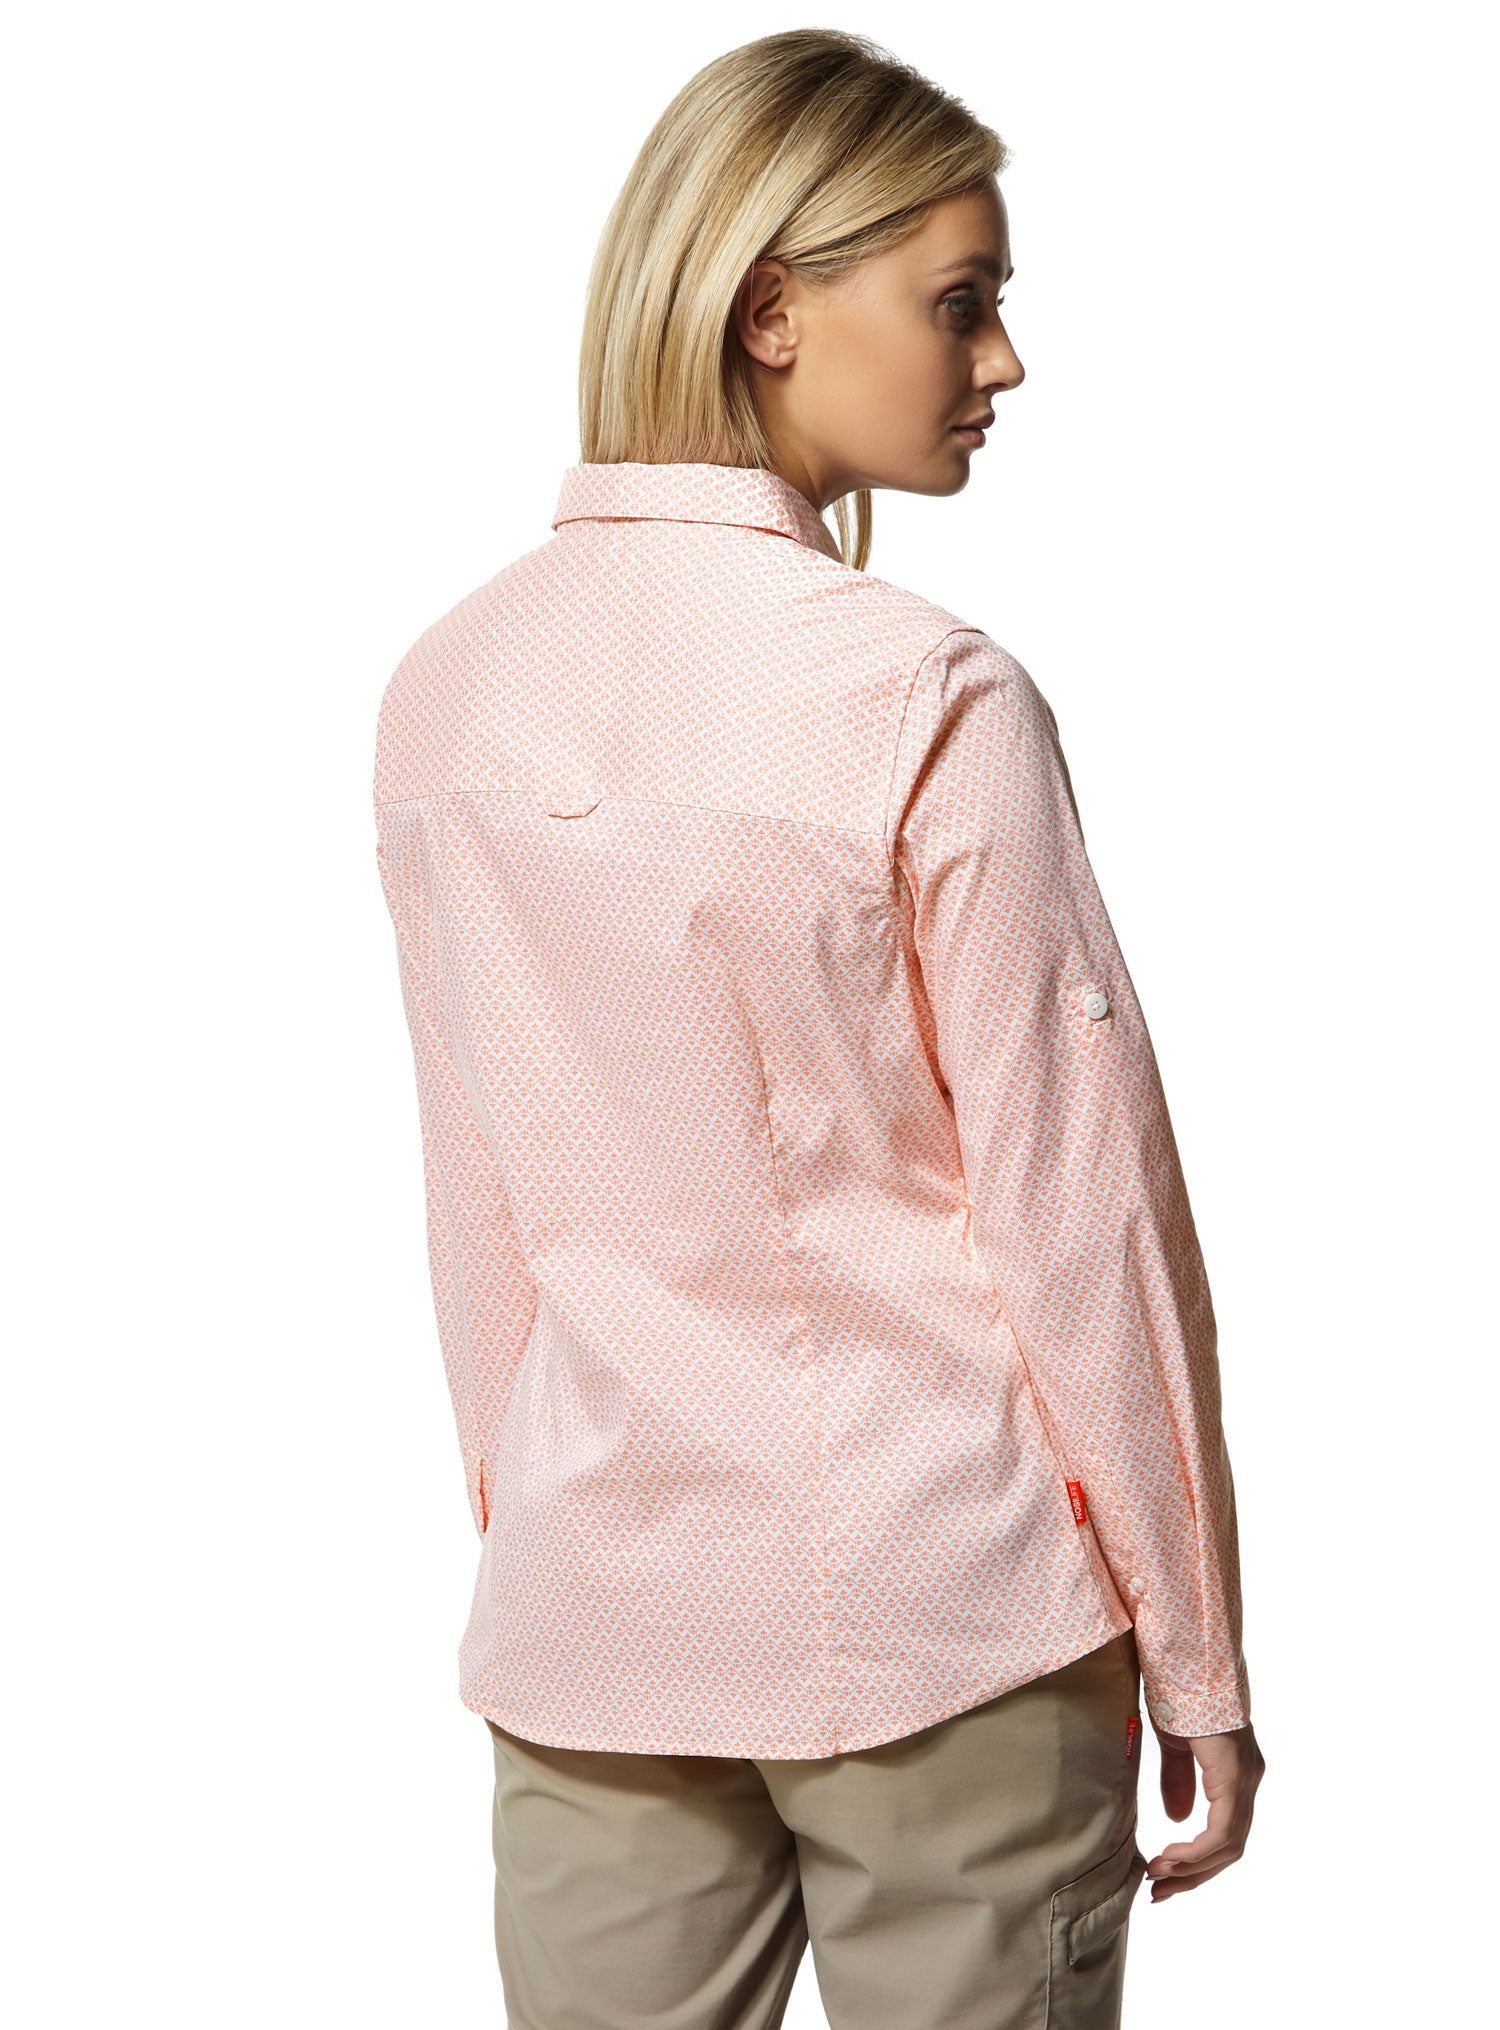 Back view lady wearing Ladies Verona Shirt by Craghoppers